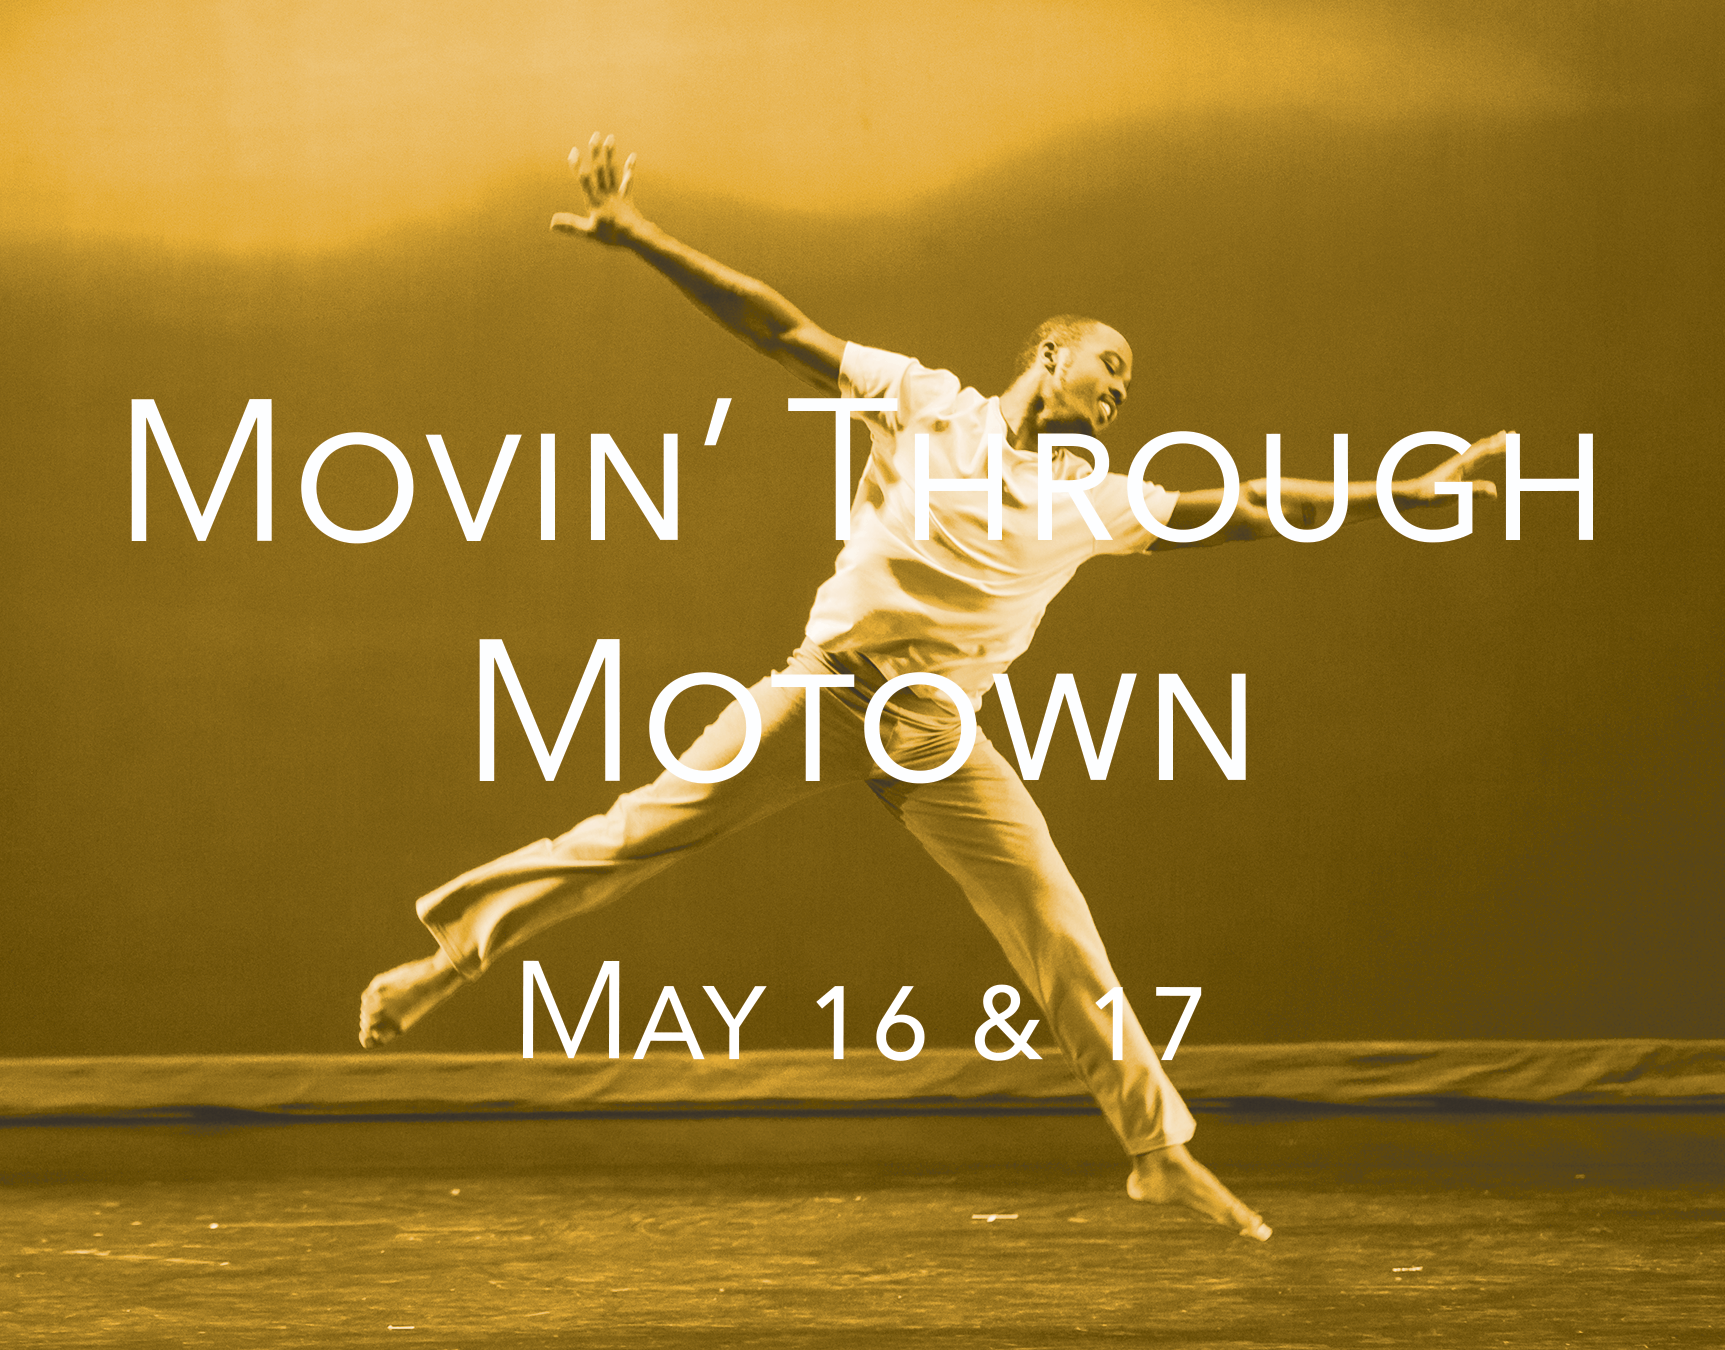 Movin' Through Motown - Saturday, May 16 | 1p, 1:30p, 2p, 2:30pSaturday, May 16 | 7p, 7:30p, 8p, 8:30pSunday, May 17 | 1p, 1:30p, 2p, 2:30pGet your groove on as you explore the Motown Mansion made famous by Berry Gordy courtesy of present homeowner, Alan Brown! The fun-loving and engaging EDD dancers take the audience on a musical road trip through the mansion with traveling dance vignettes featuring the energy and soul, gospel and grit, that made the Motor City famous. Follow that unmistakable Motown sound as it leads you from room to room!Motown Mansion918 W Boston Blvd, Detroit, MI 48202